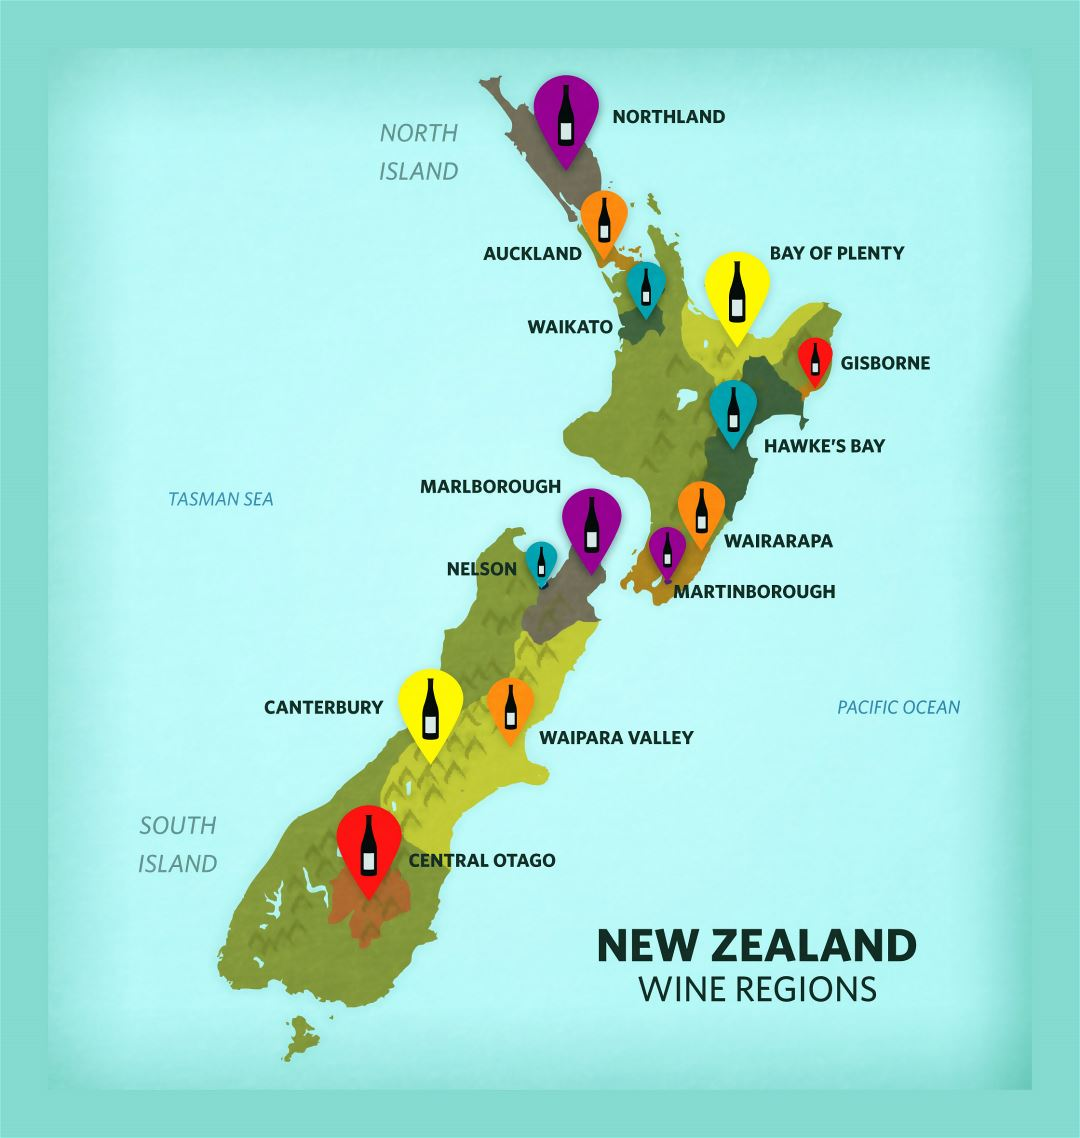 Large wine regions map of New Zealand